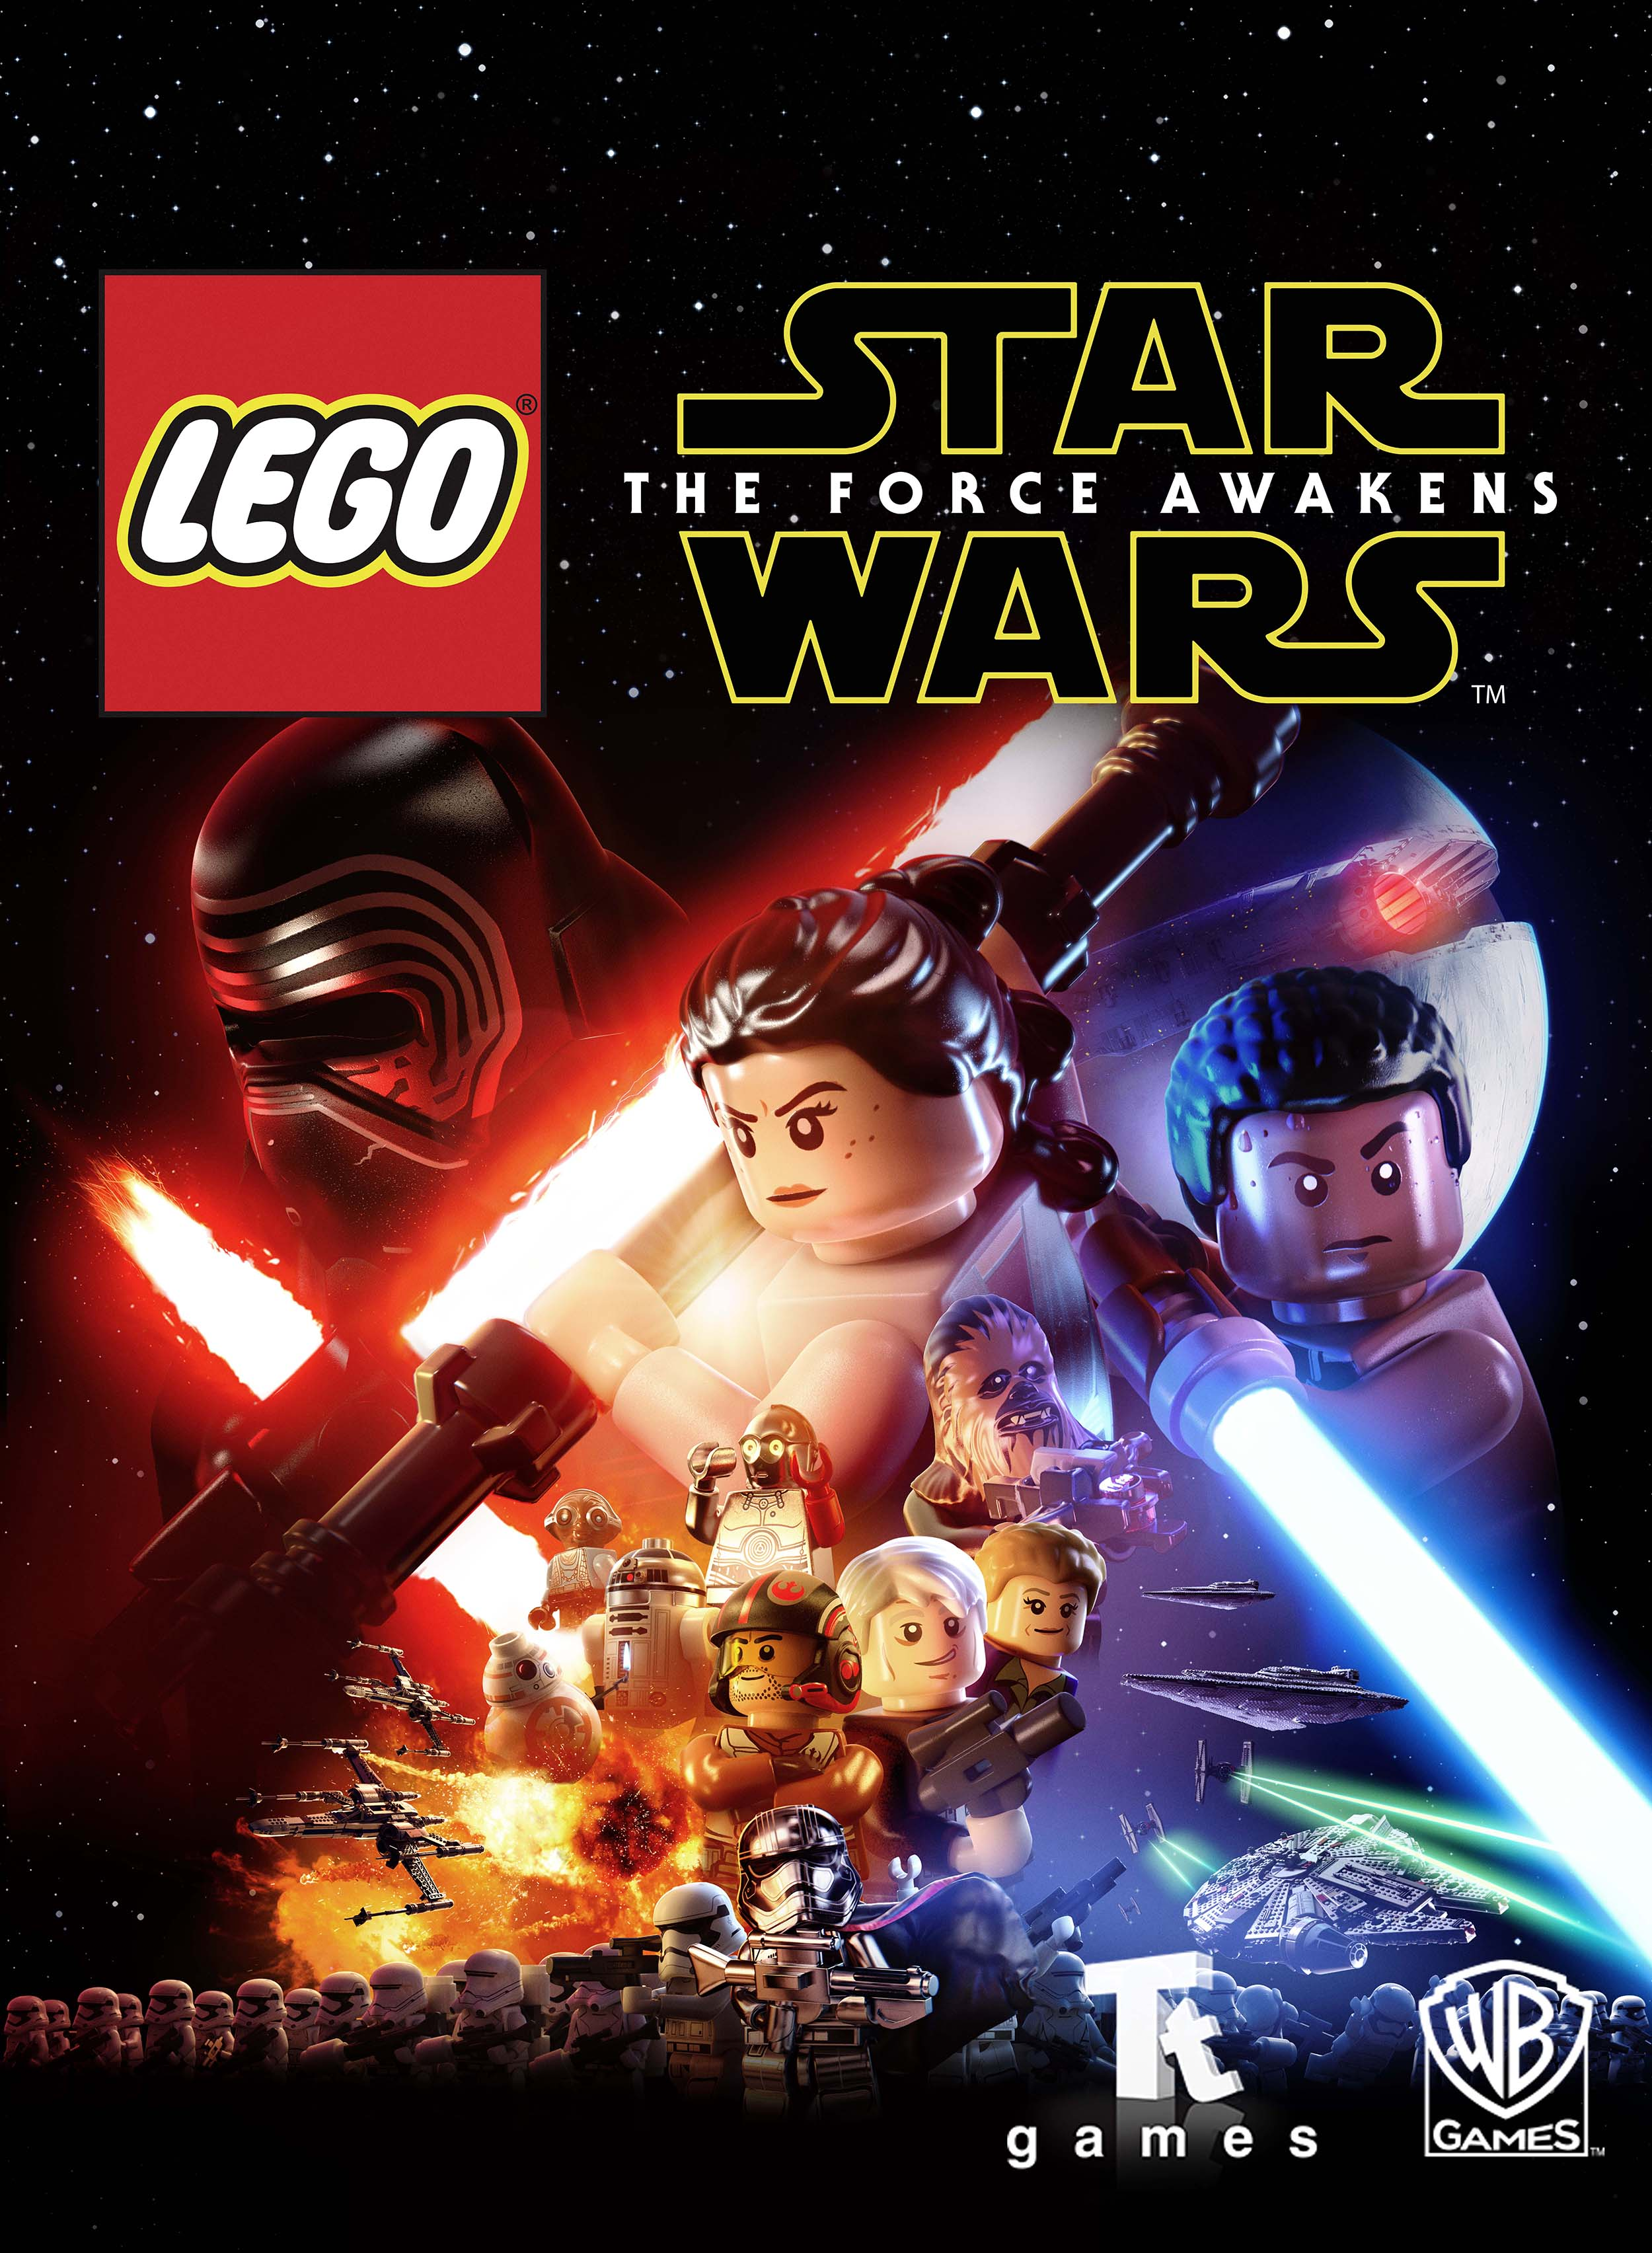 Lego Star Wars The Force Awakens Video Game 2016 Imdb